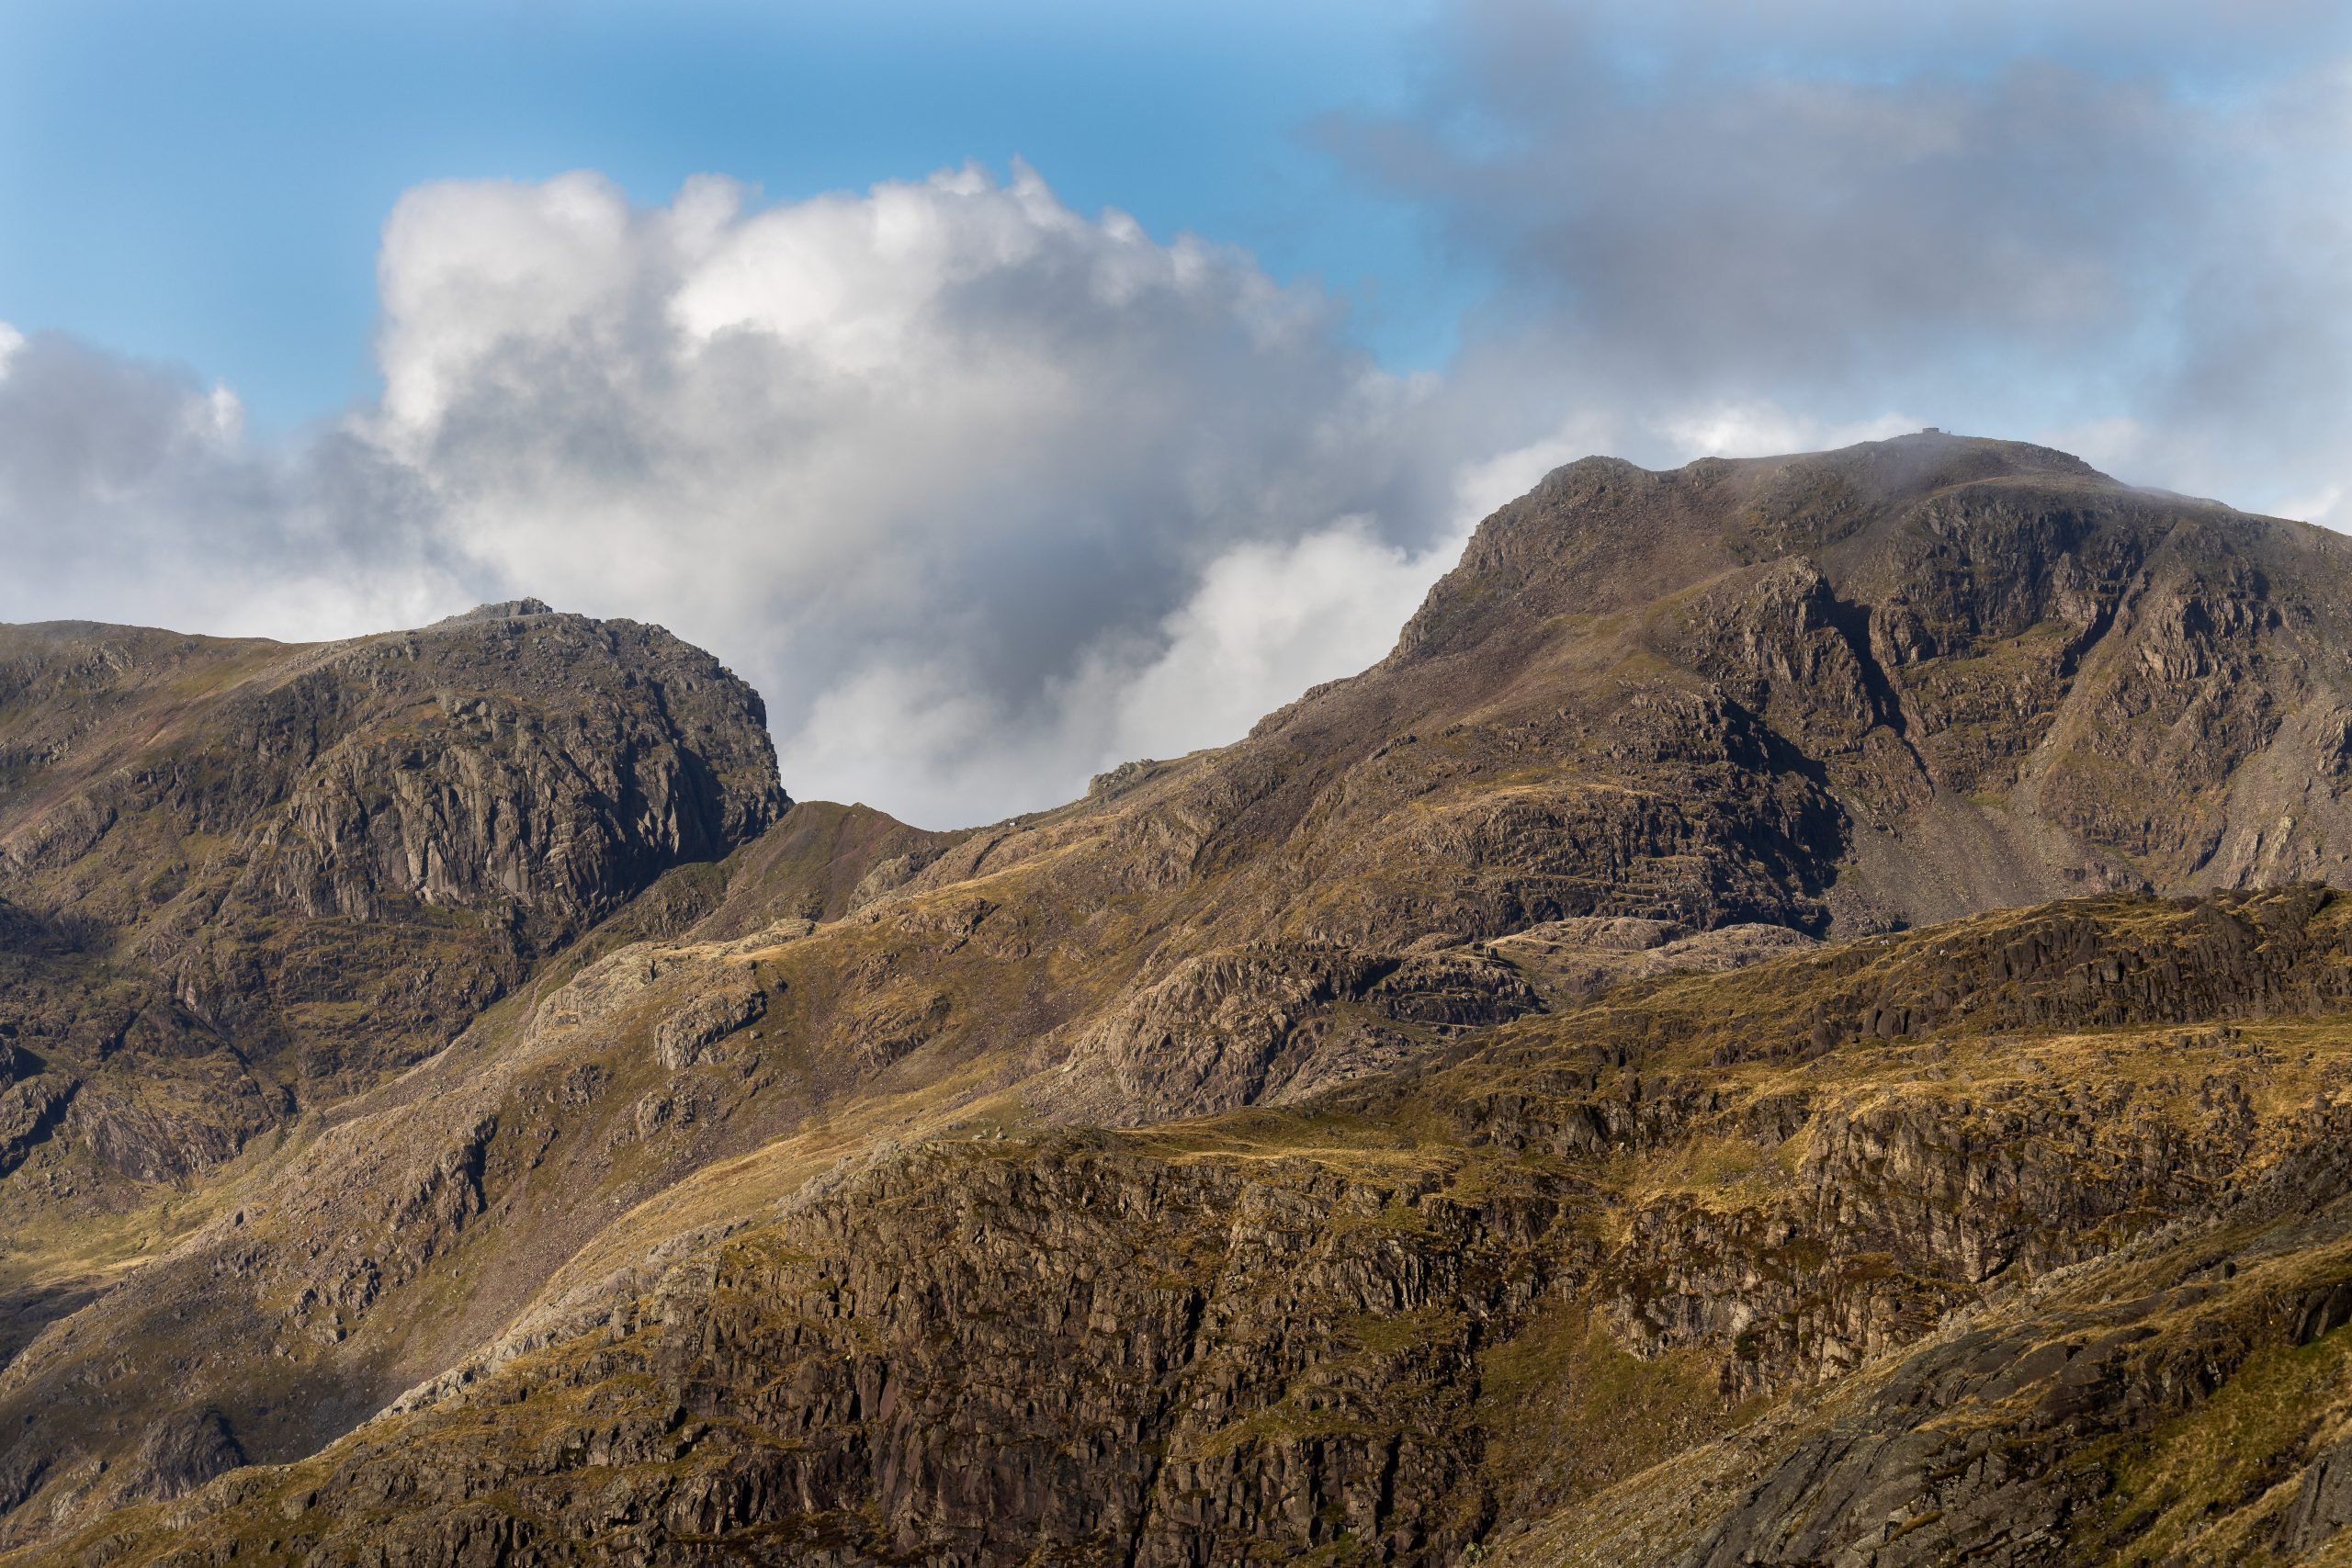 A close up of the cliffs of Scafell, with the col or saddle of Mickledore and Scafell Pike also visible on the right during a guided walk